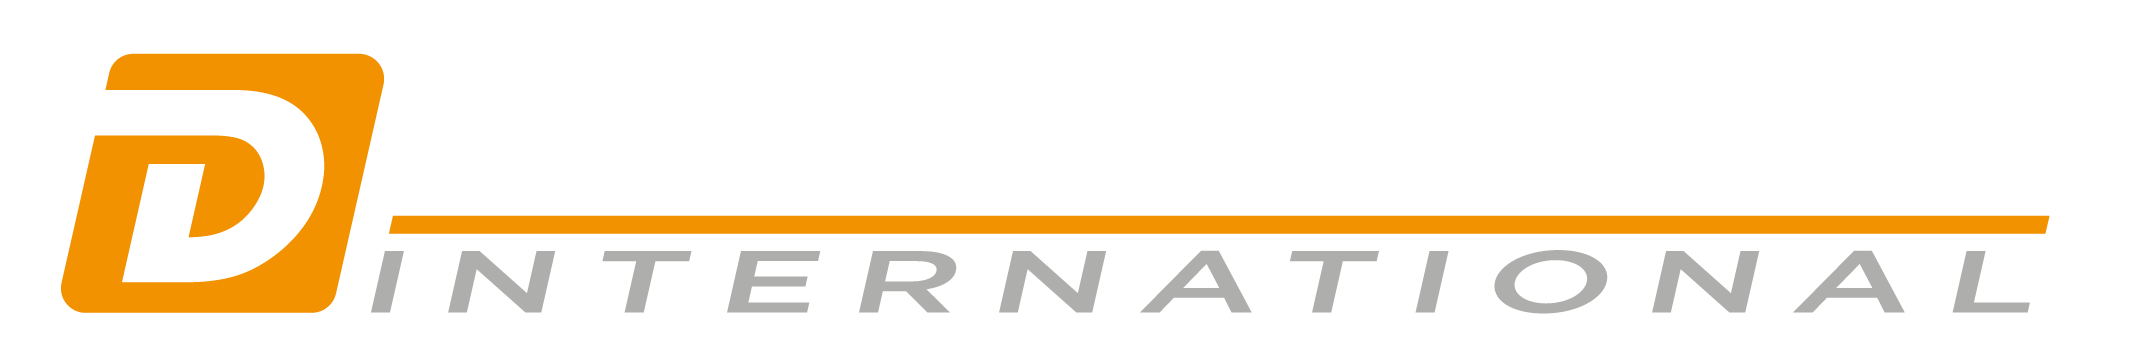 Direct Delivery logo